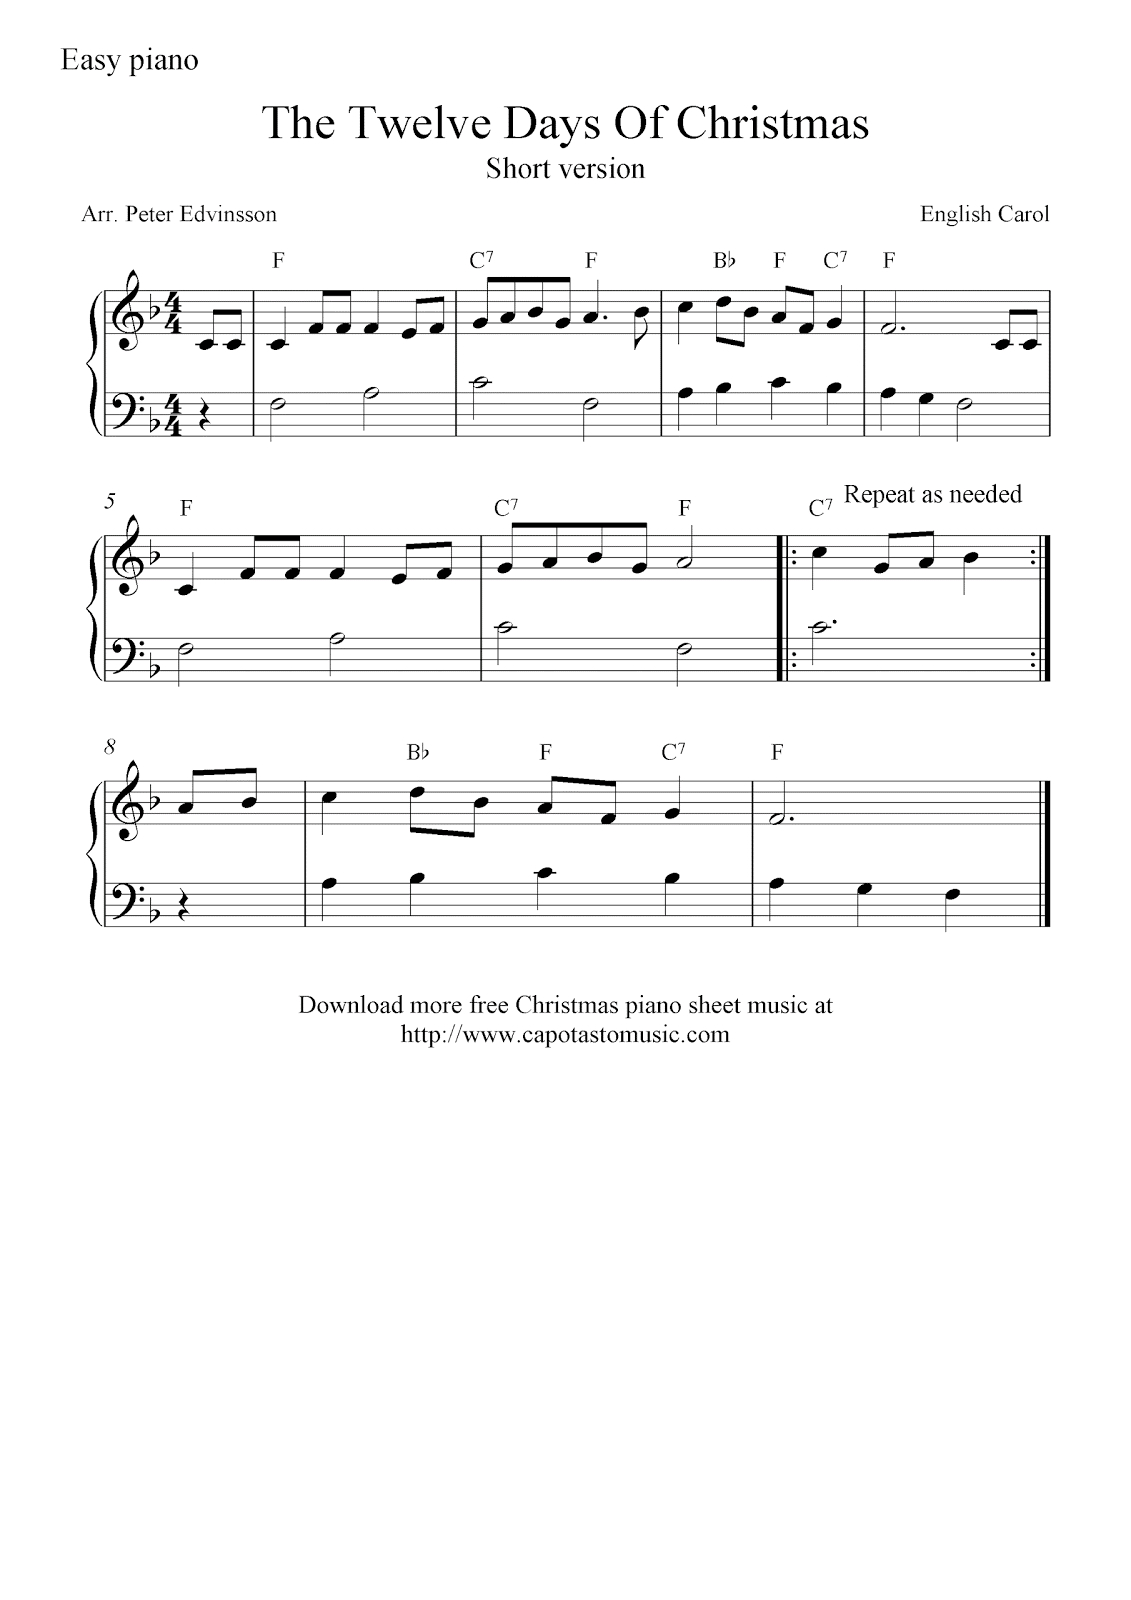 Free Christmas Piano Sheet Music Notes, The Twelve Days Of Christmas - Christmas Piano Sheet Music Easy Free Printable